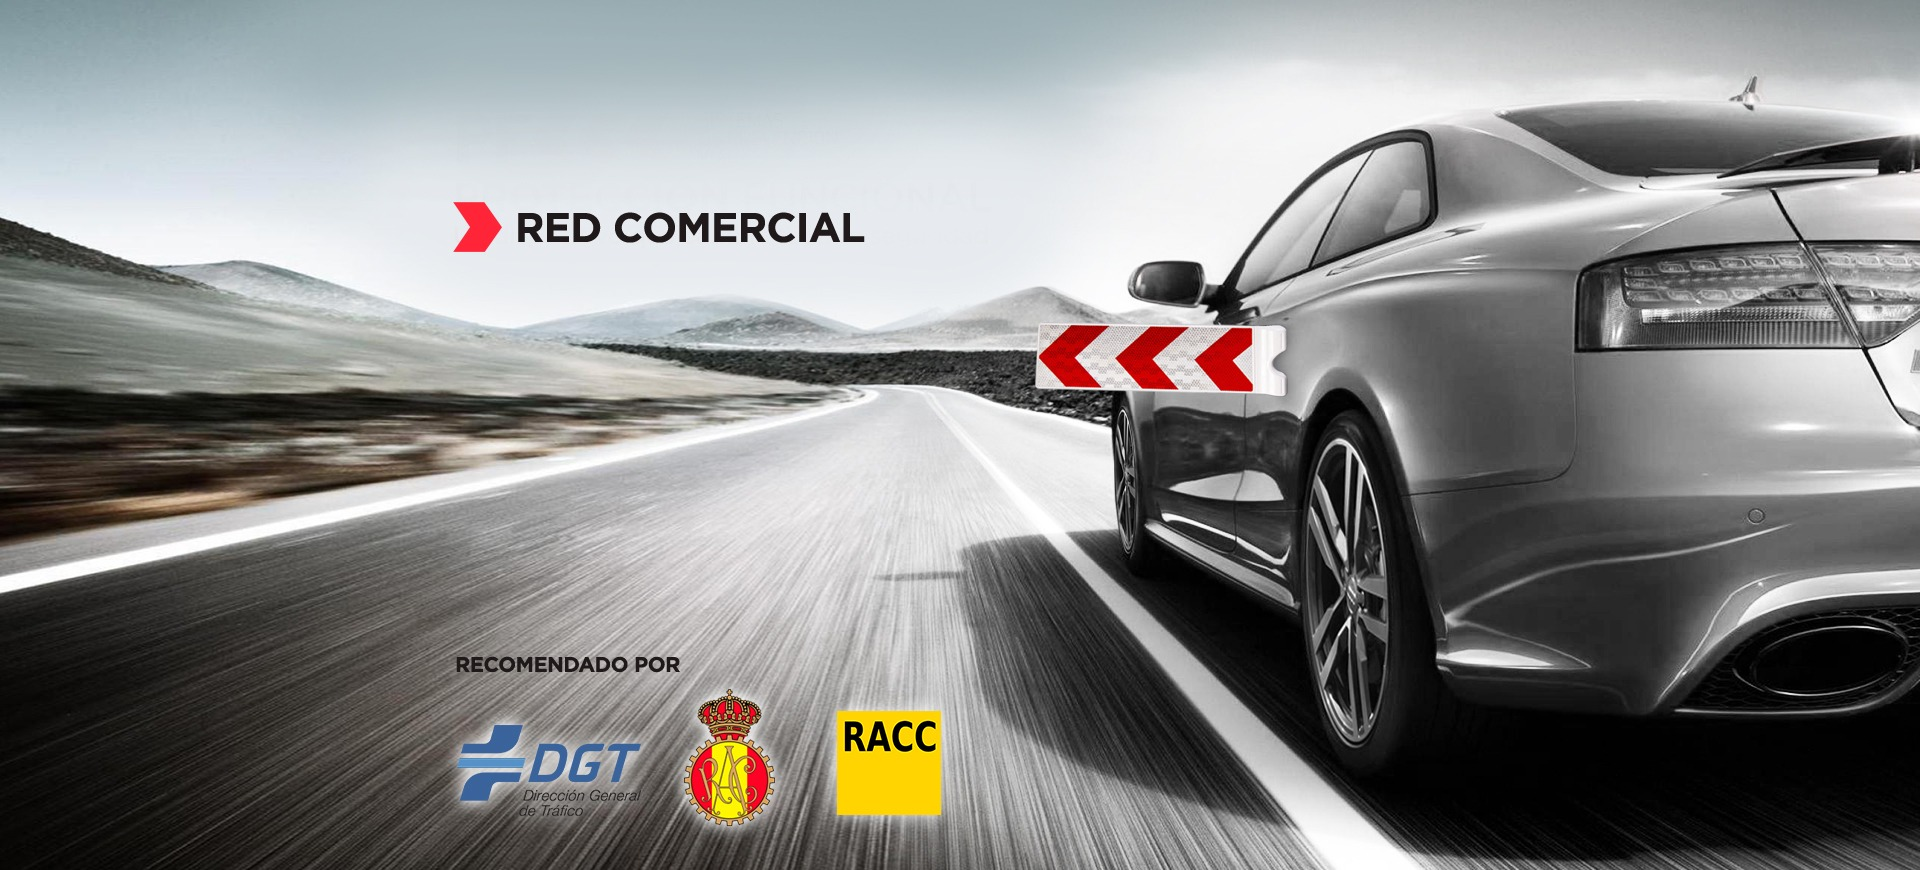 cab-red-comercial